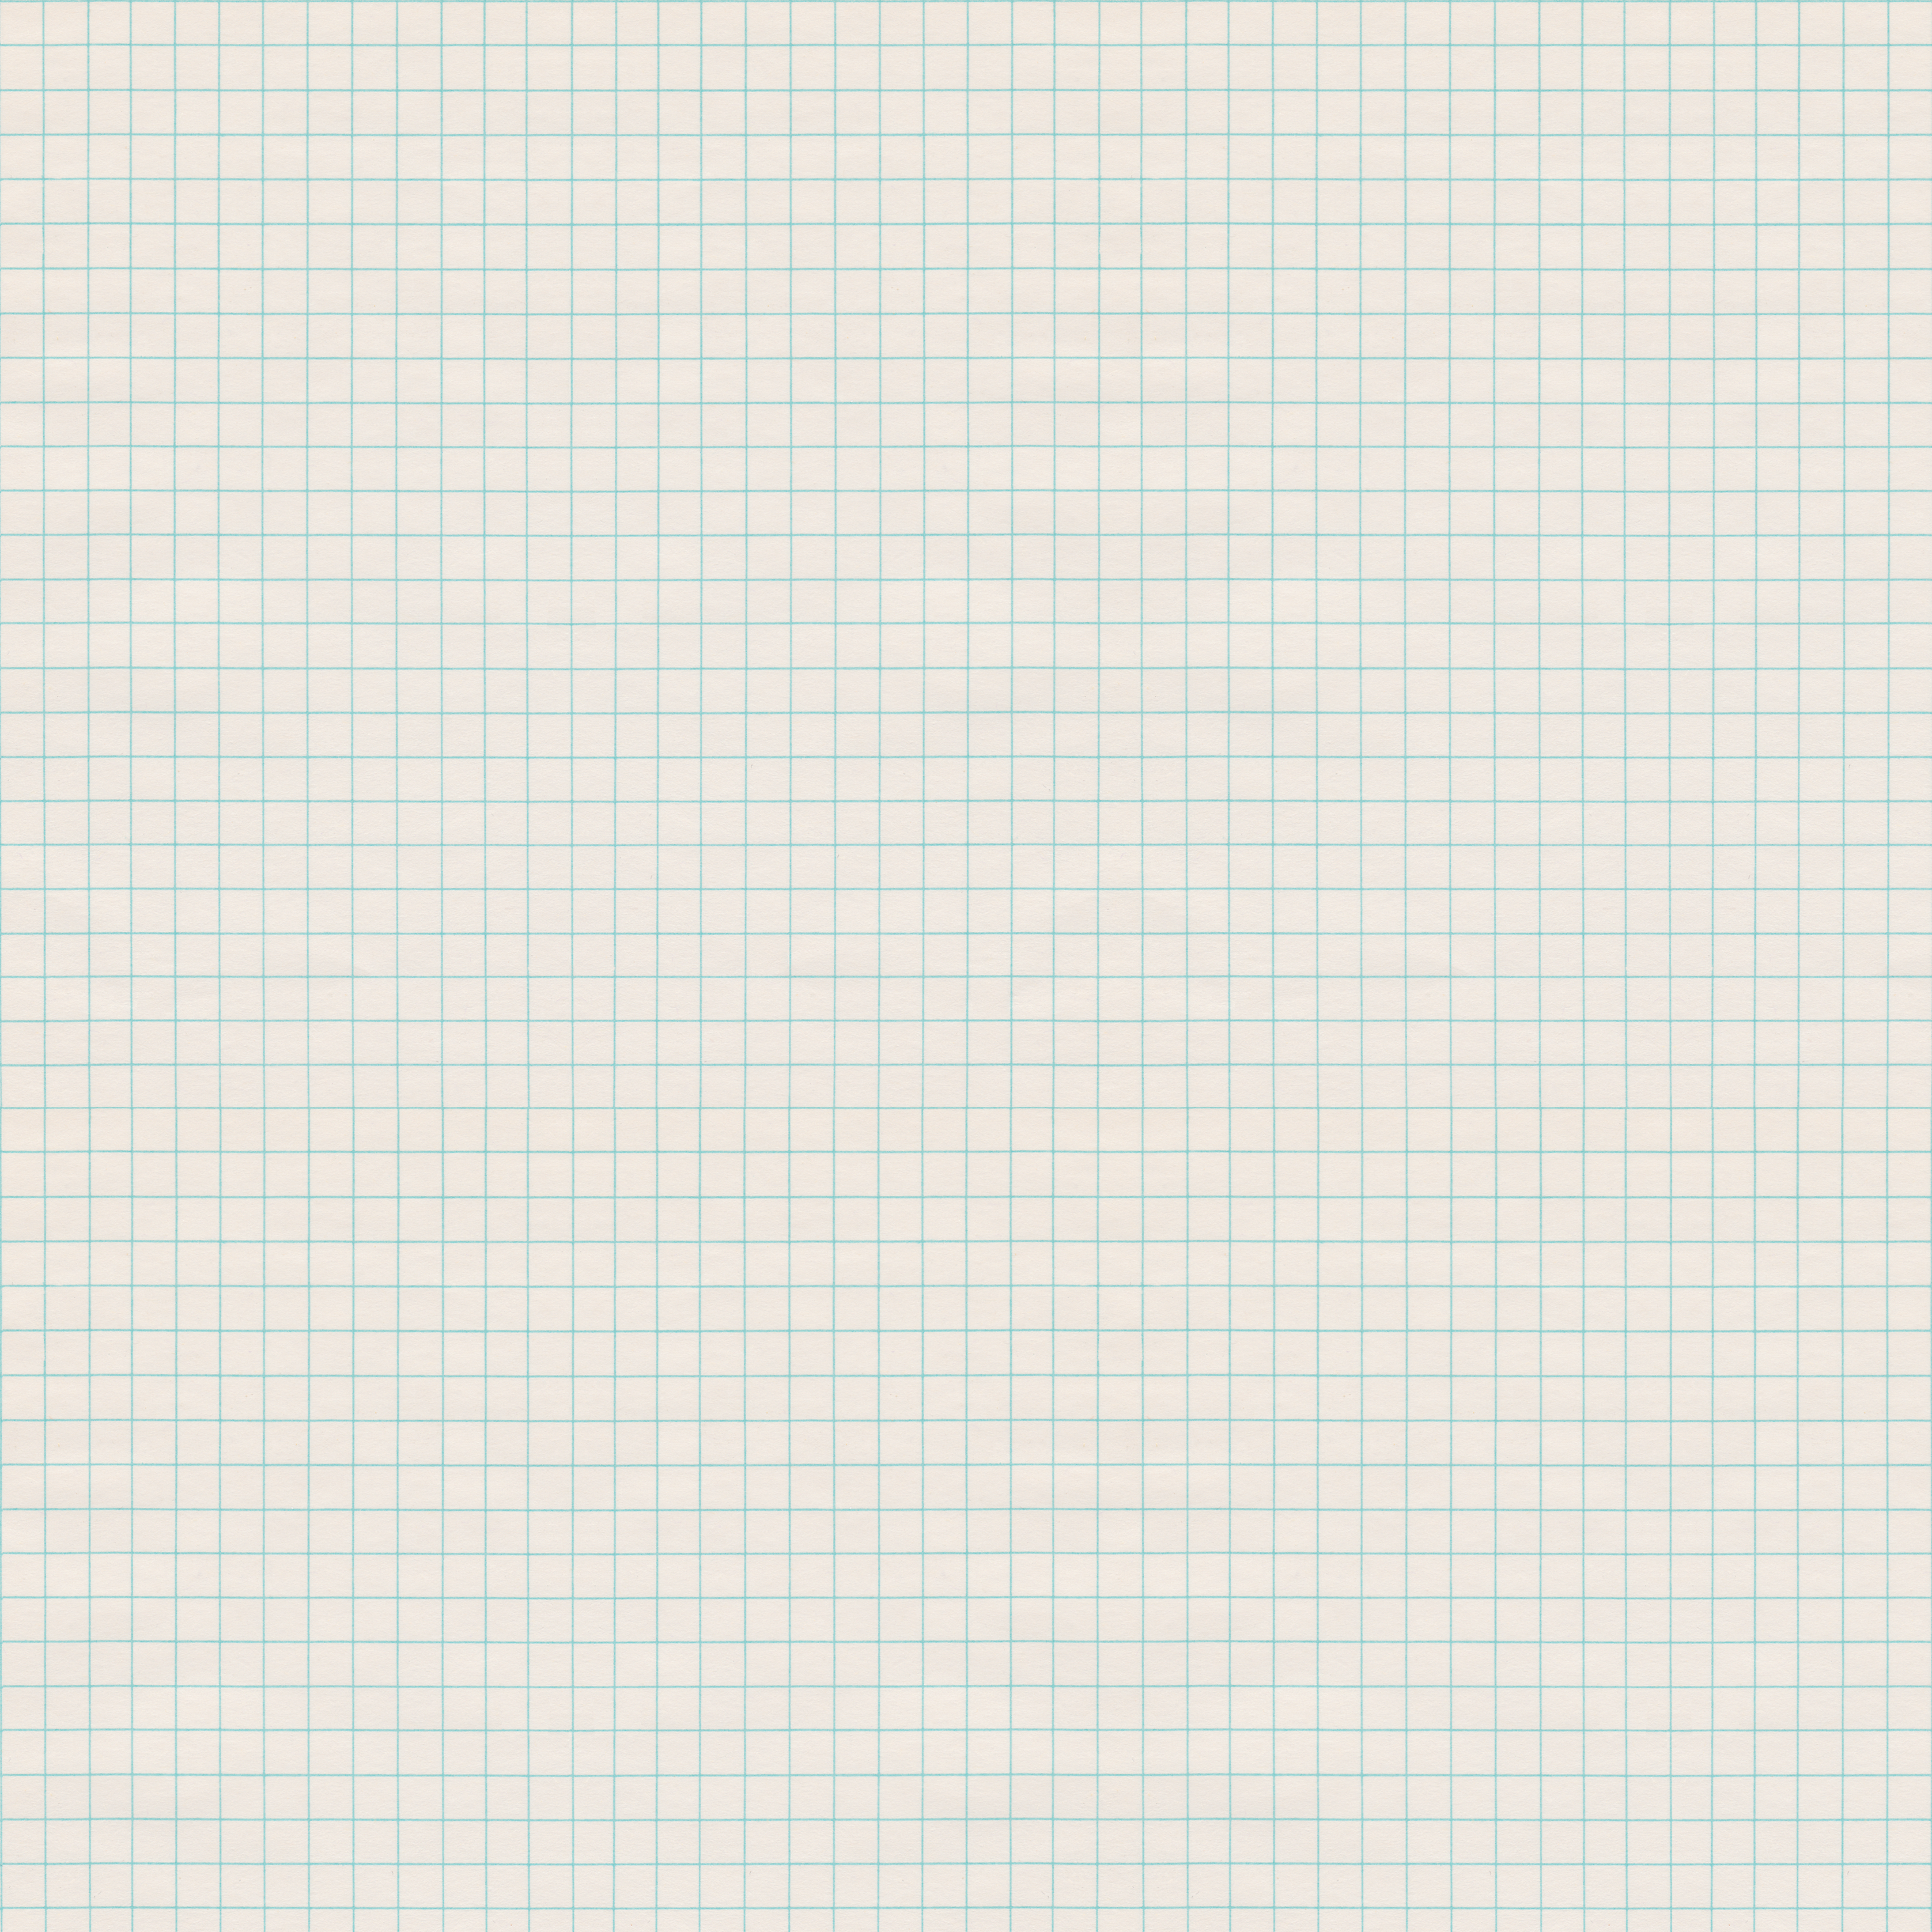 Printable Hexagon Graph Paper With 12inch Spacing